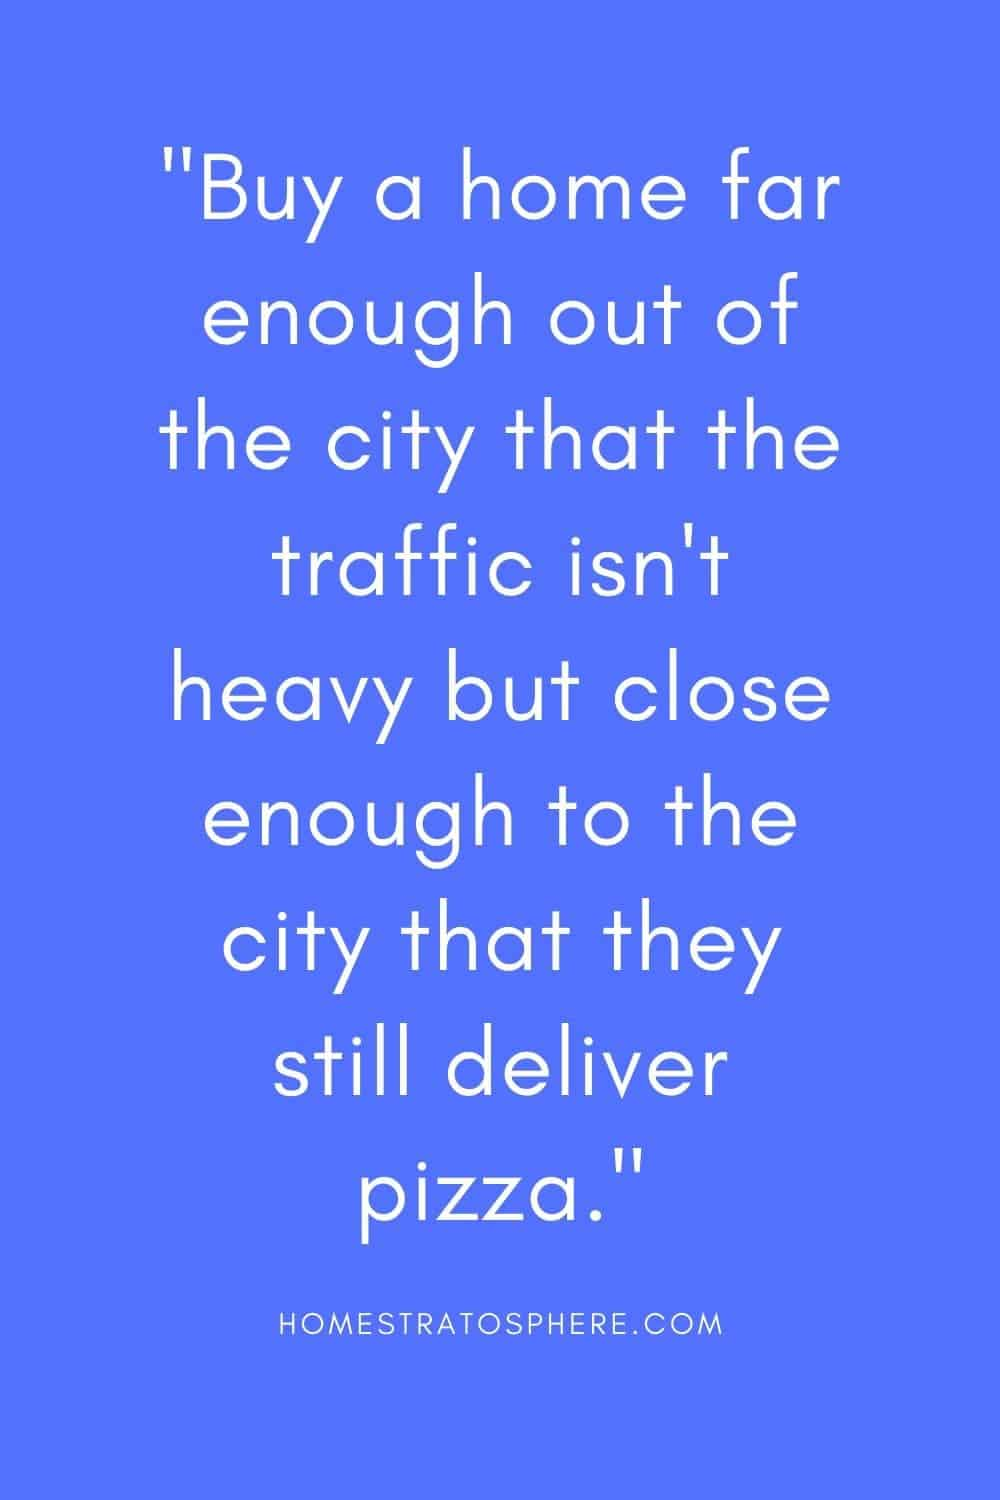 """Buy a home far enough out of the city that the traffic isn't heavy but close enough to the city that they still deliver pizza."""